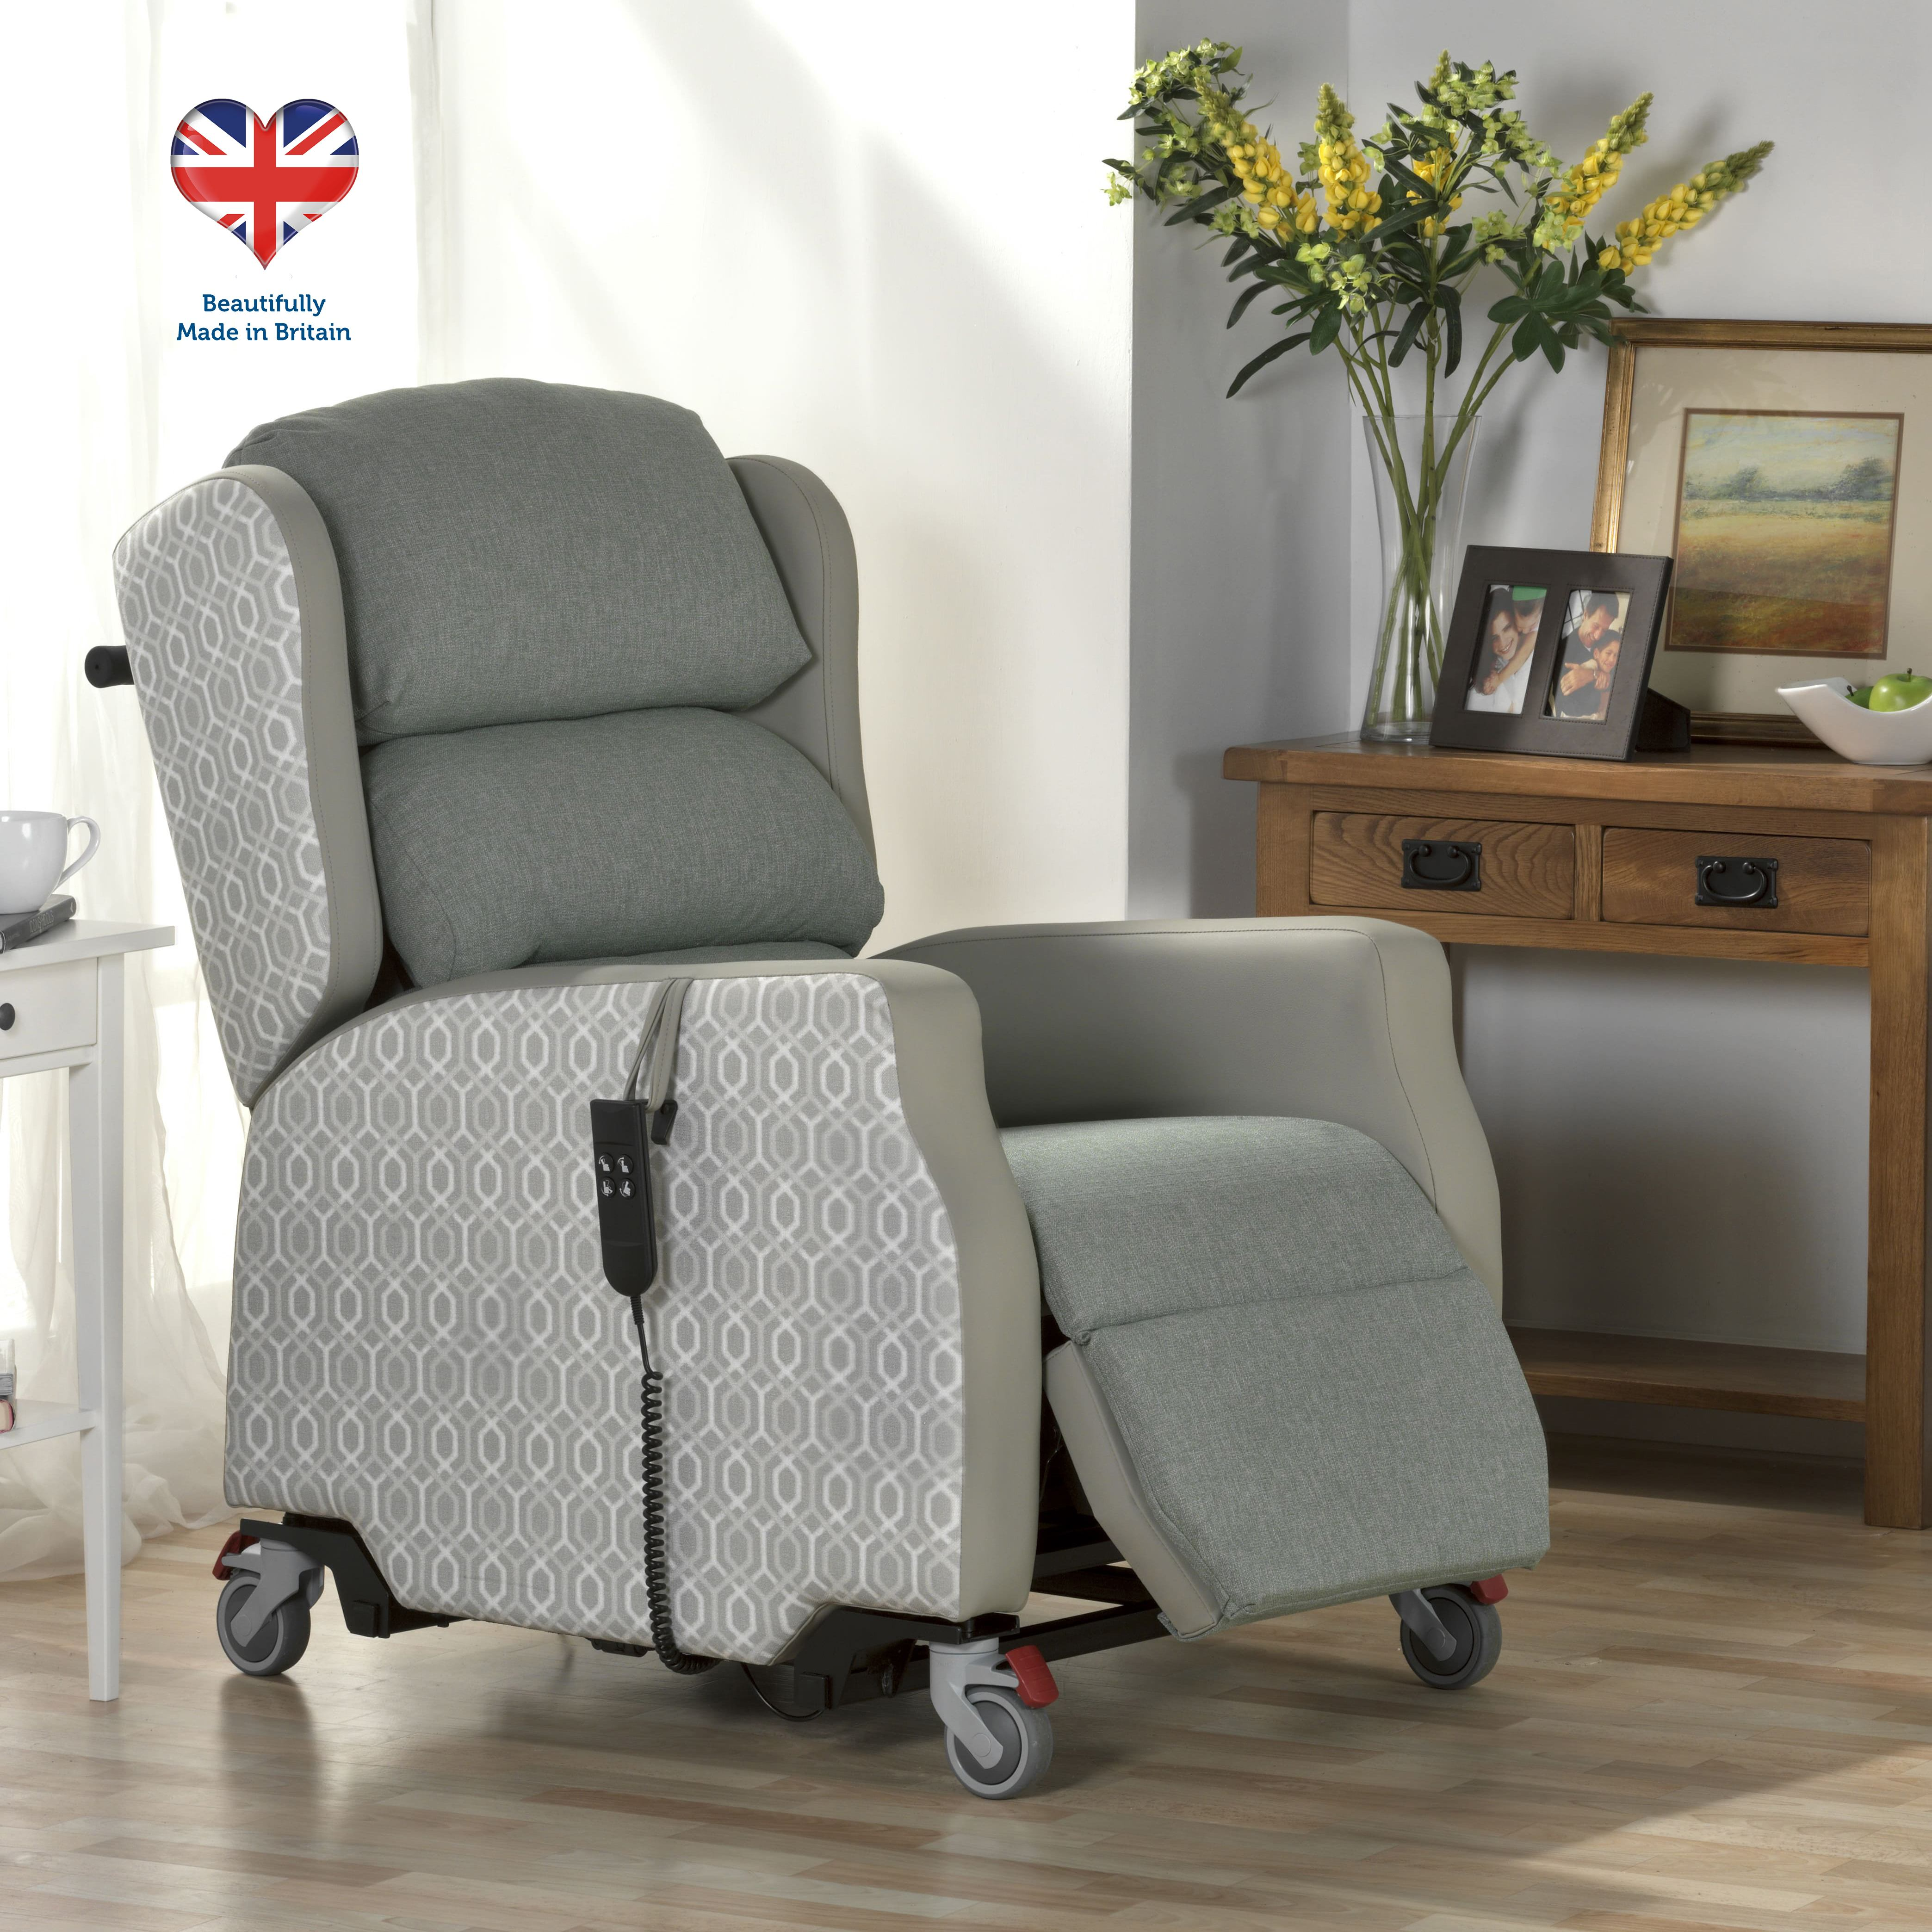 Madison Portable Rise and Recline Armchair UK Delivery